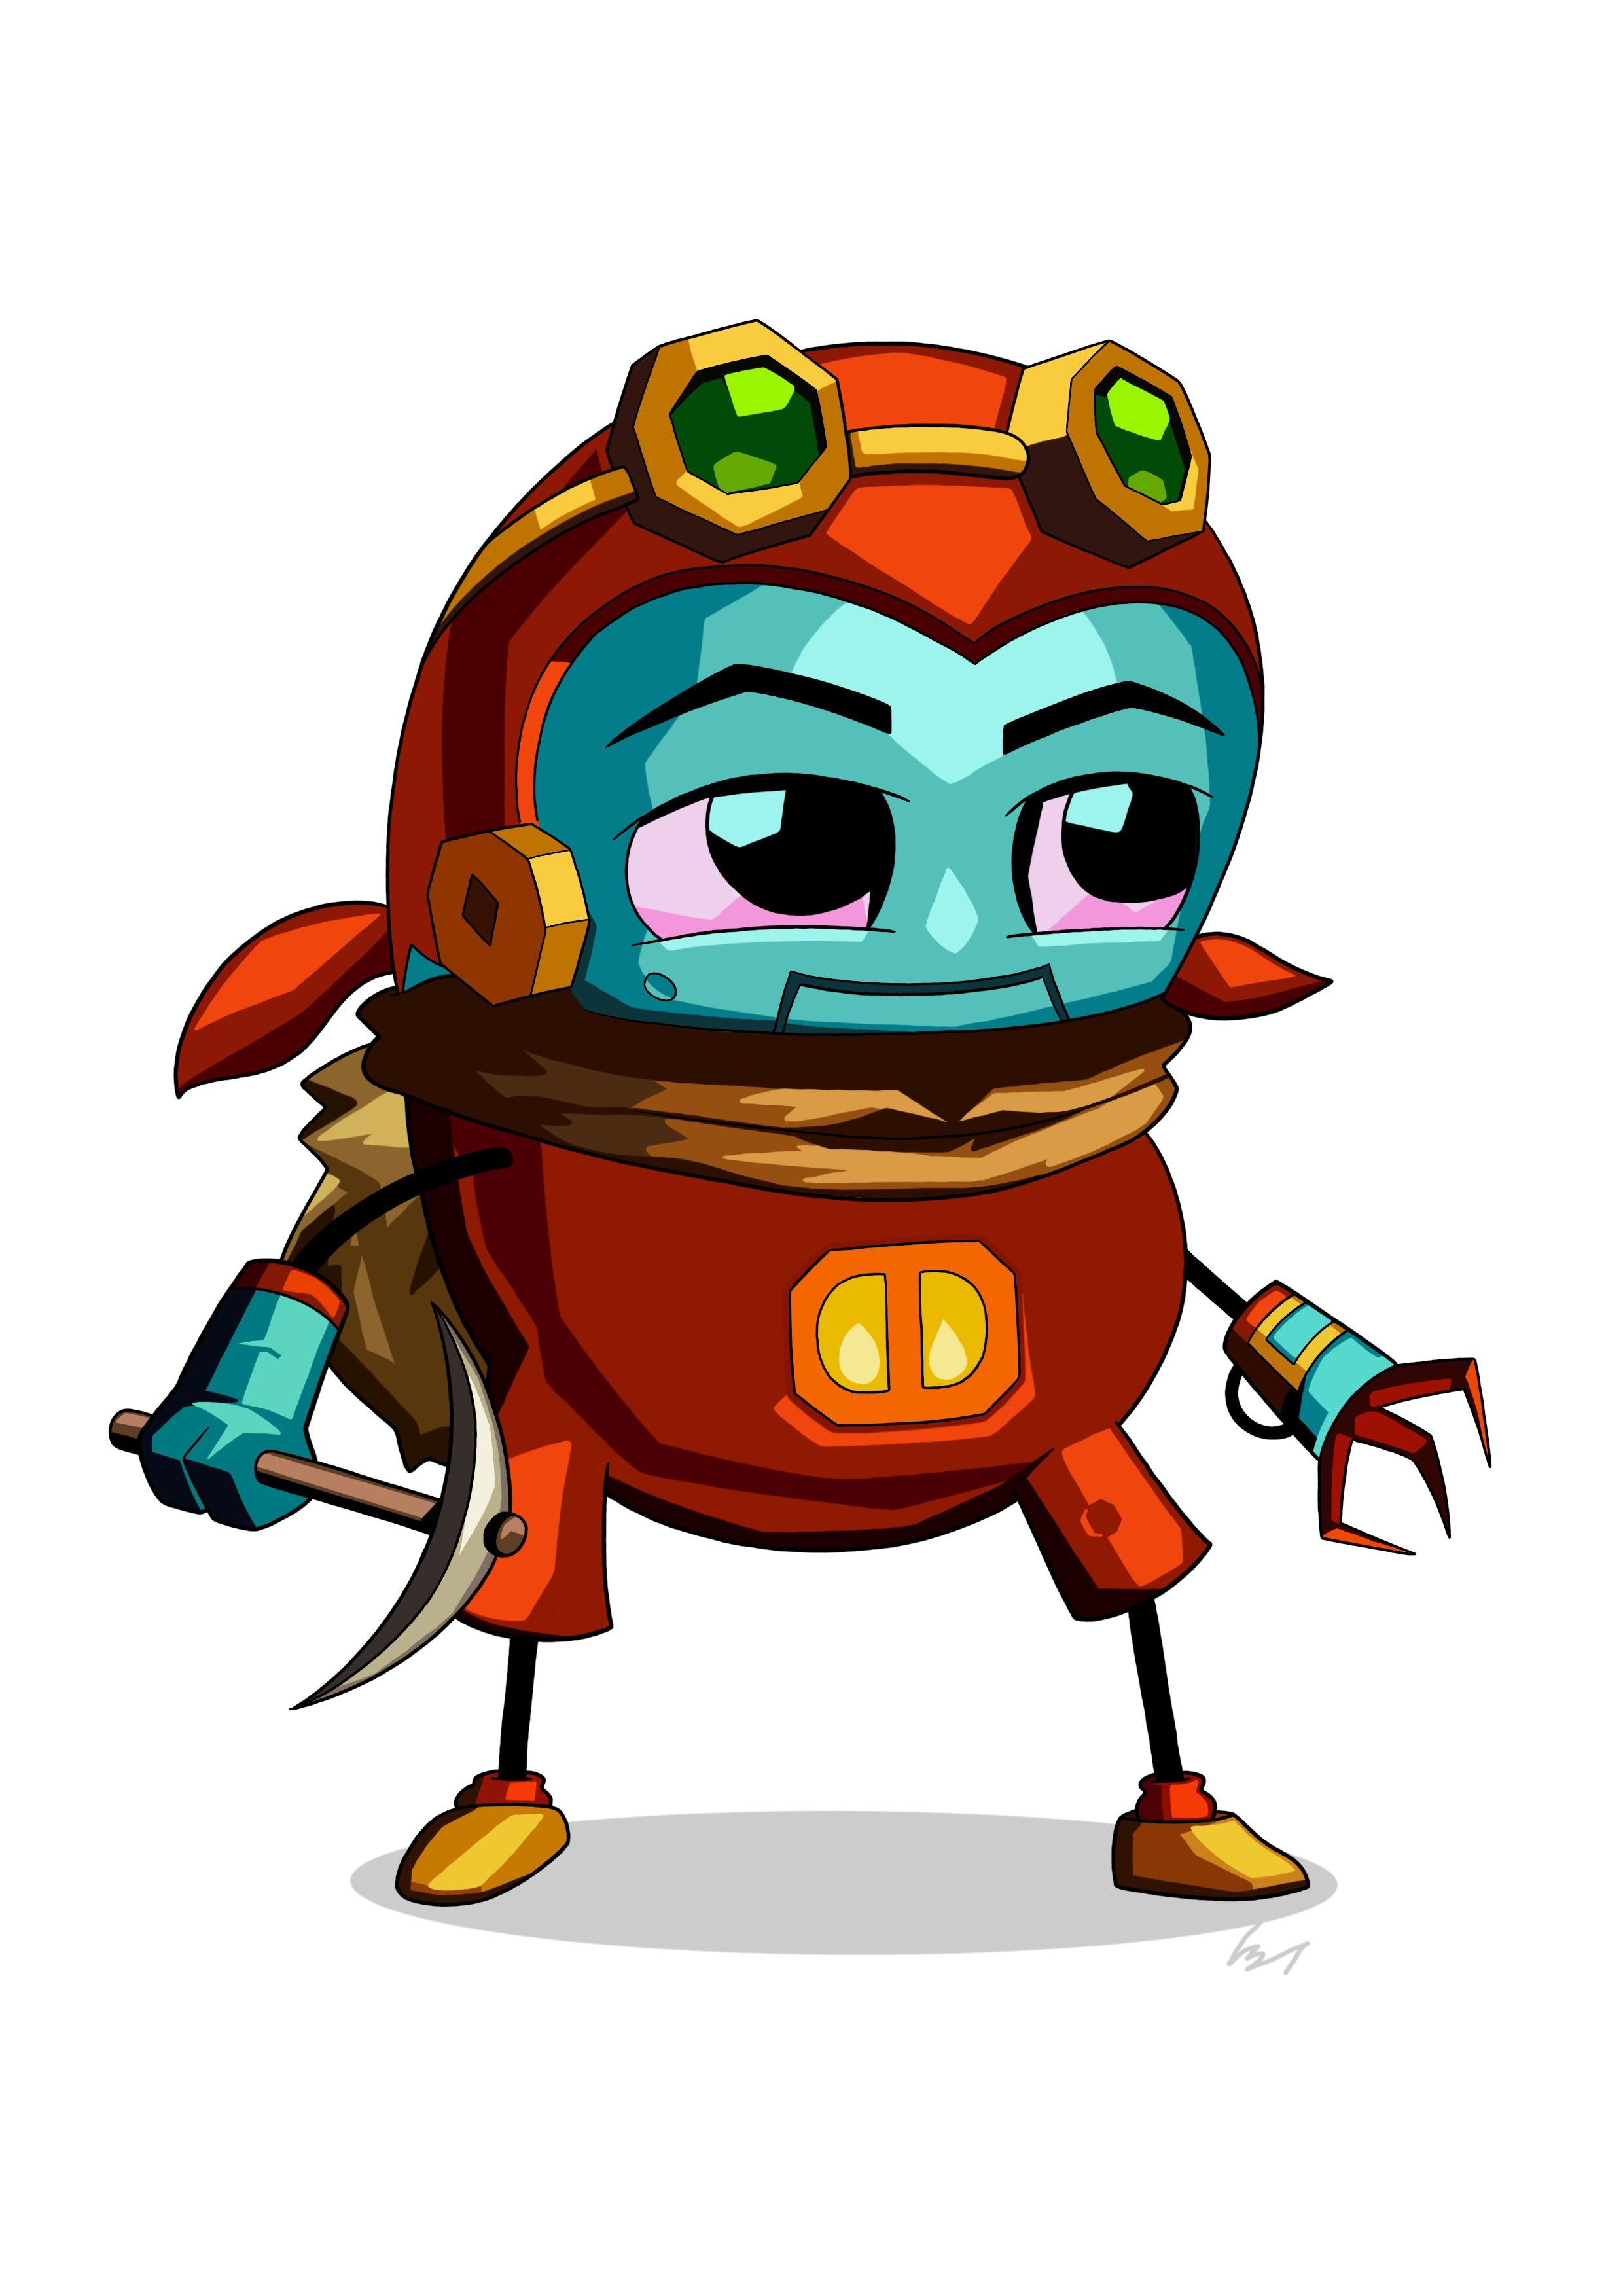 2480x3508 I'M Digging Steamworld Dig 2 (Punningly Awful, I'M Sorry